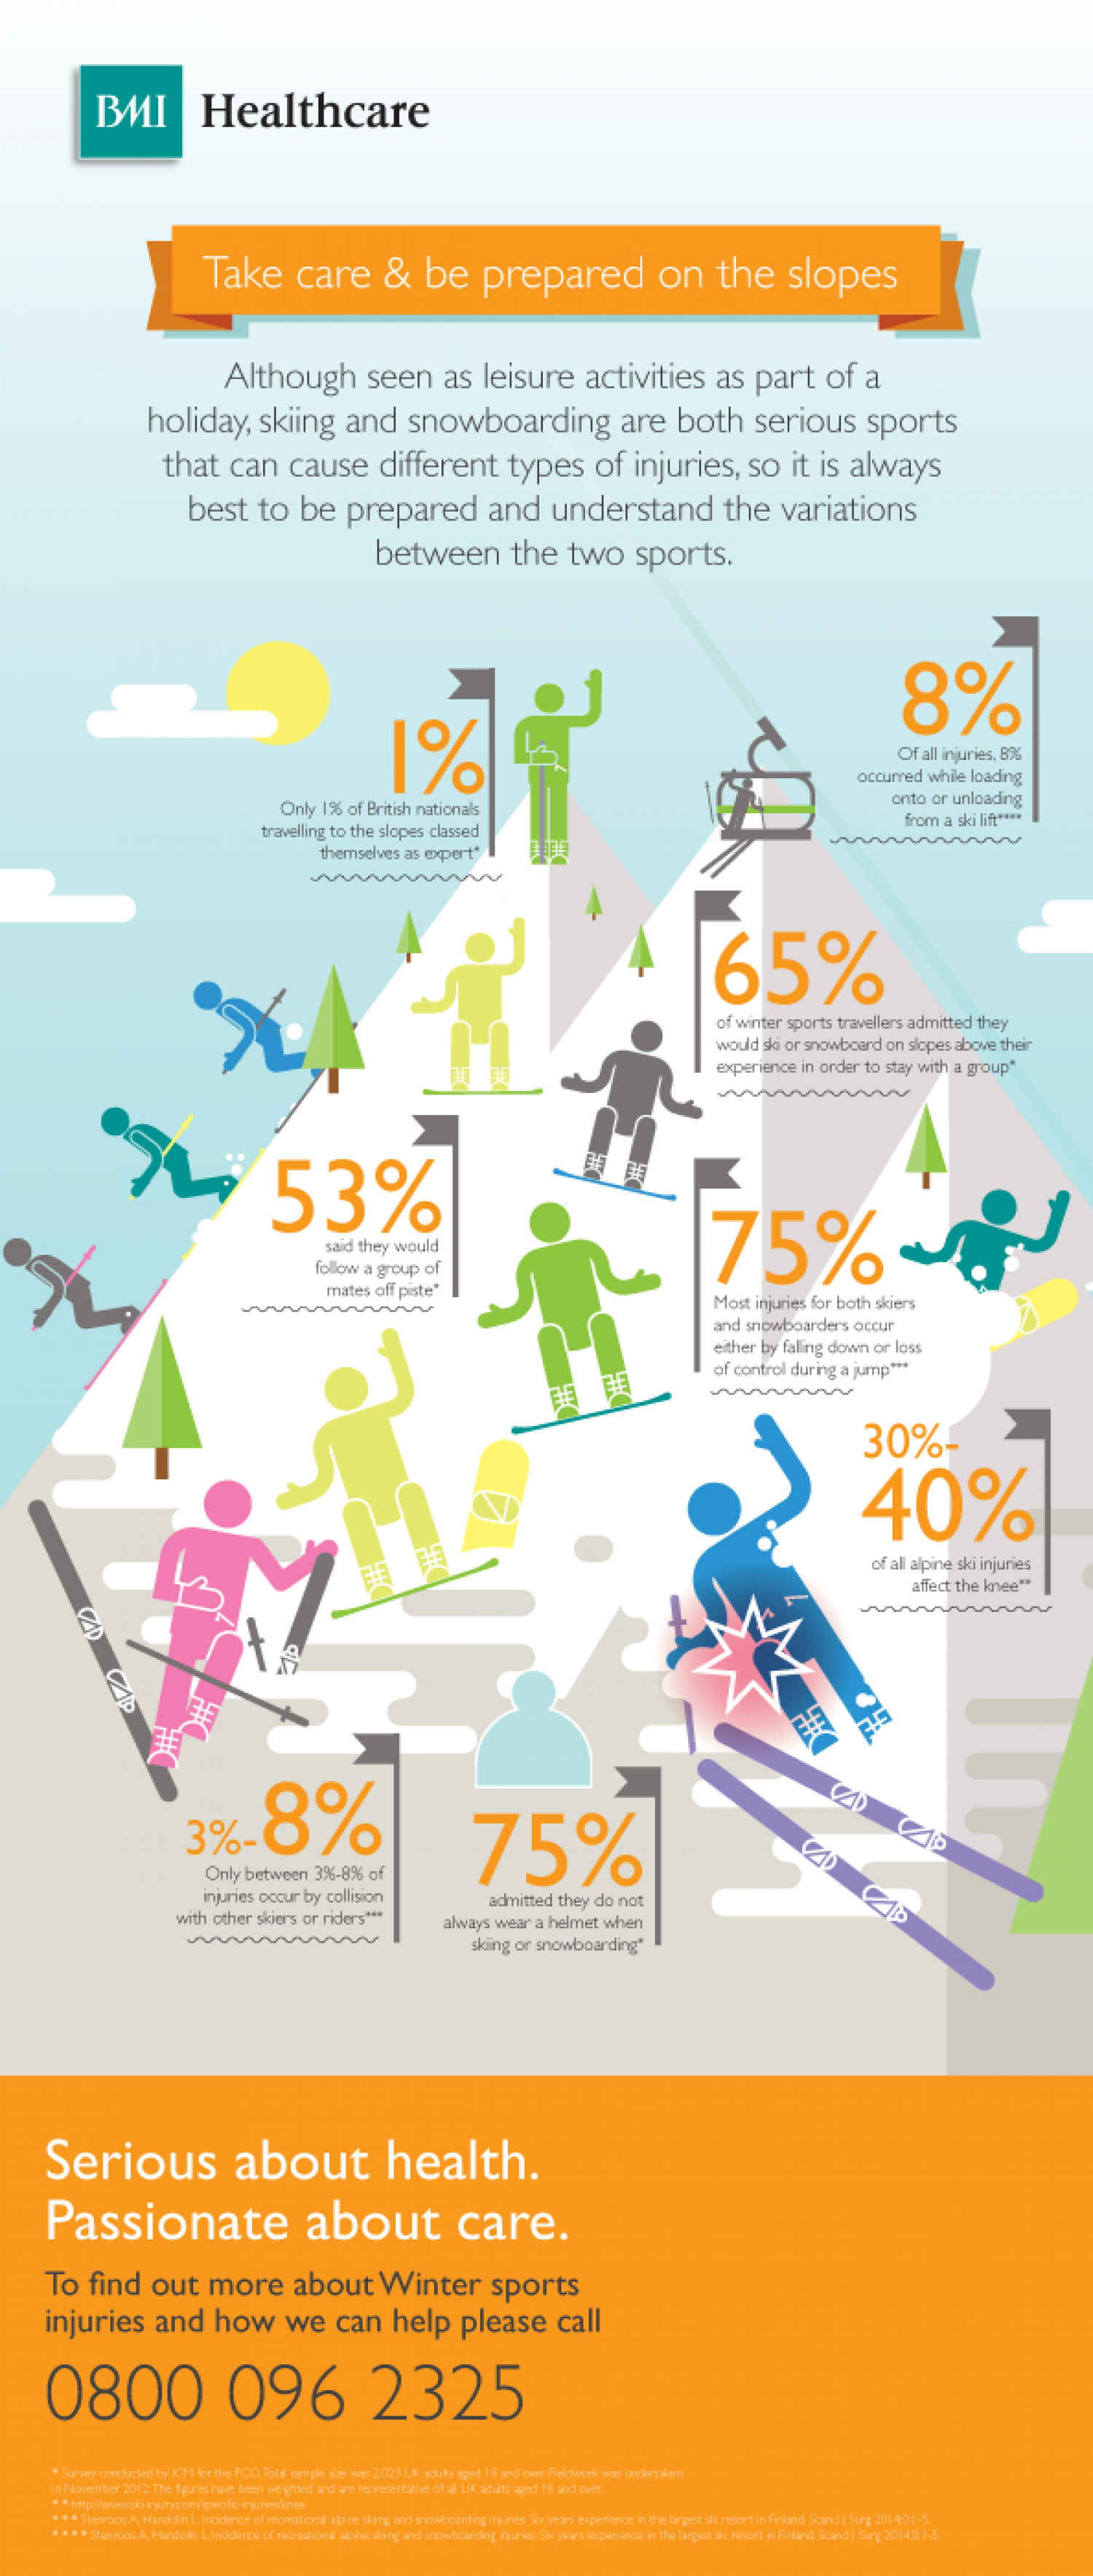 Skiing Injury Facts - Take Care & Be Prepared On The Slopes Infographic